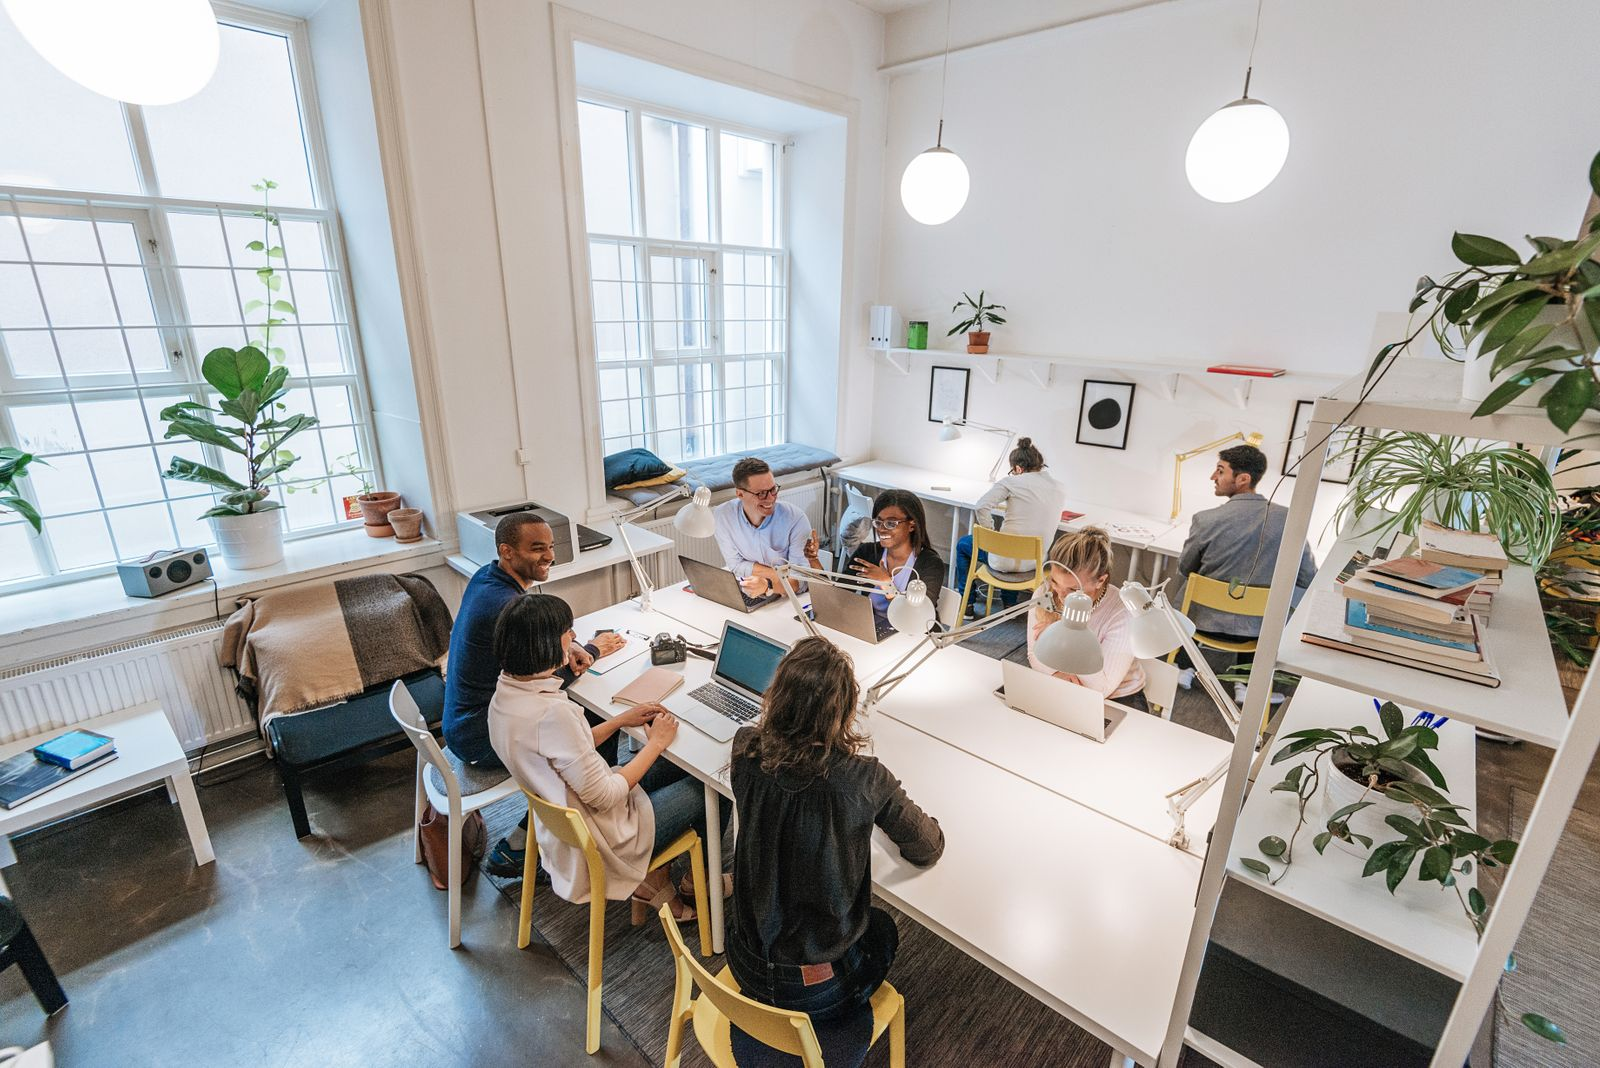 Modern business office with multi-ethnic team